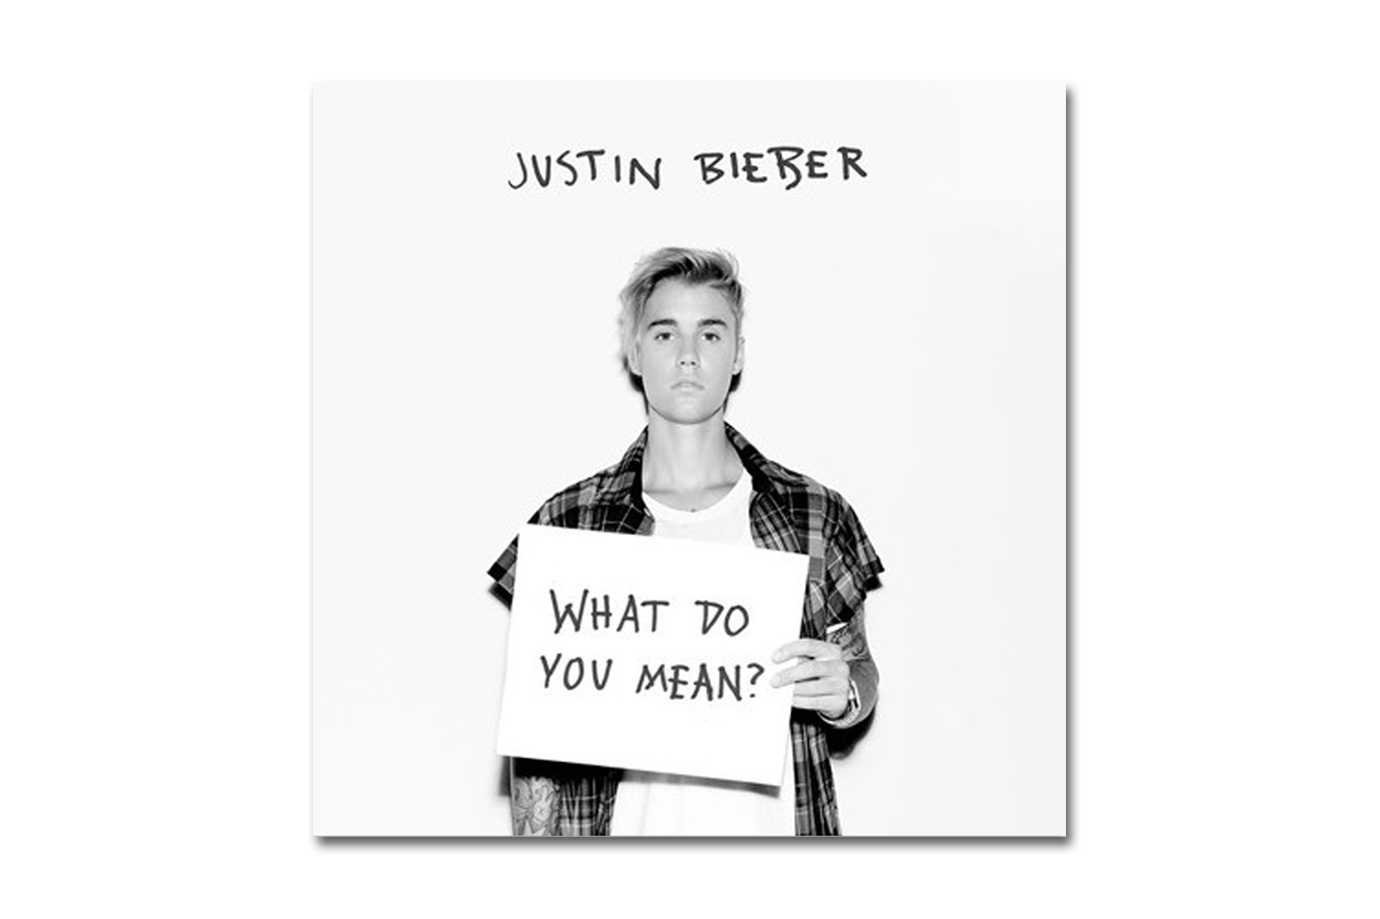 Justin Bieber - What Do You Mean (Produced by Skrillex)